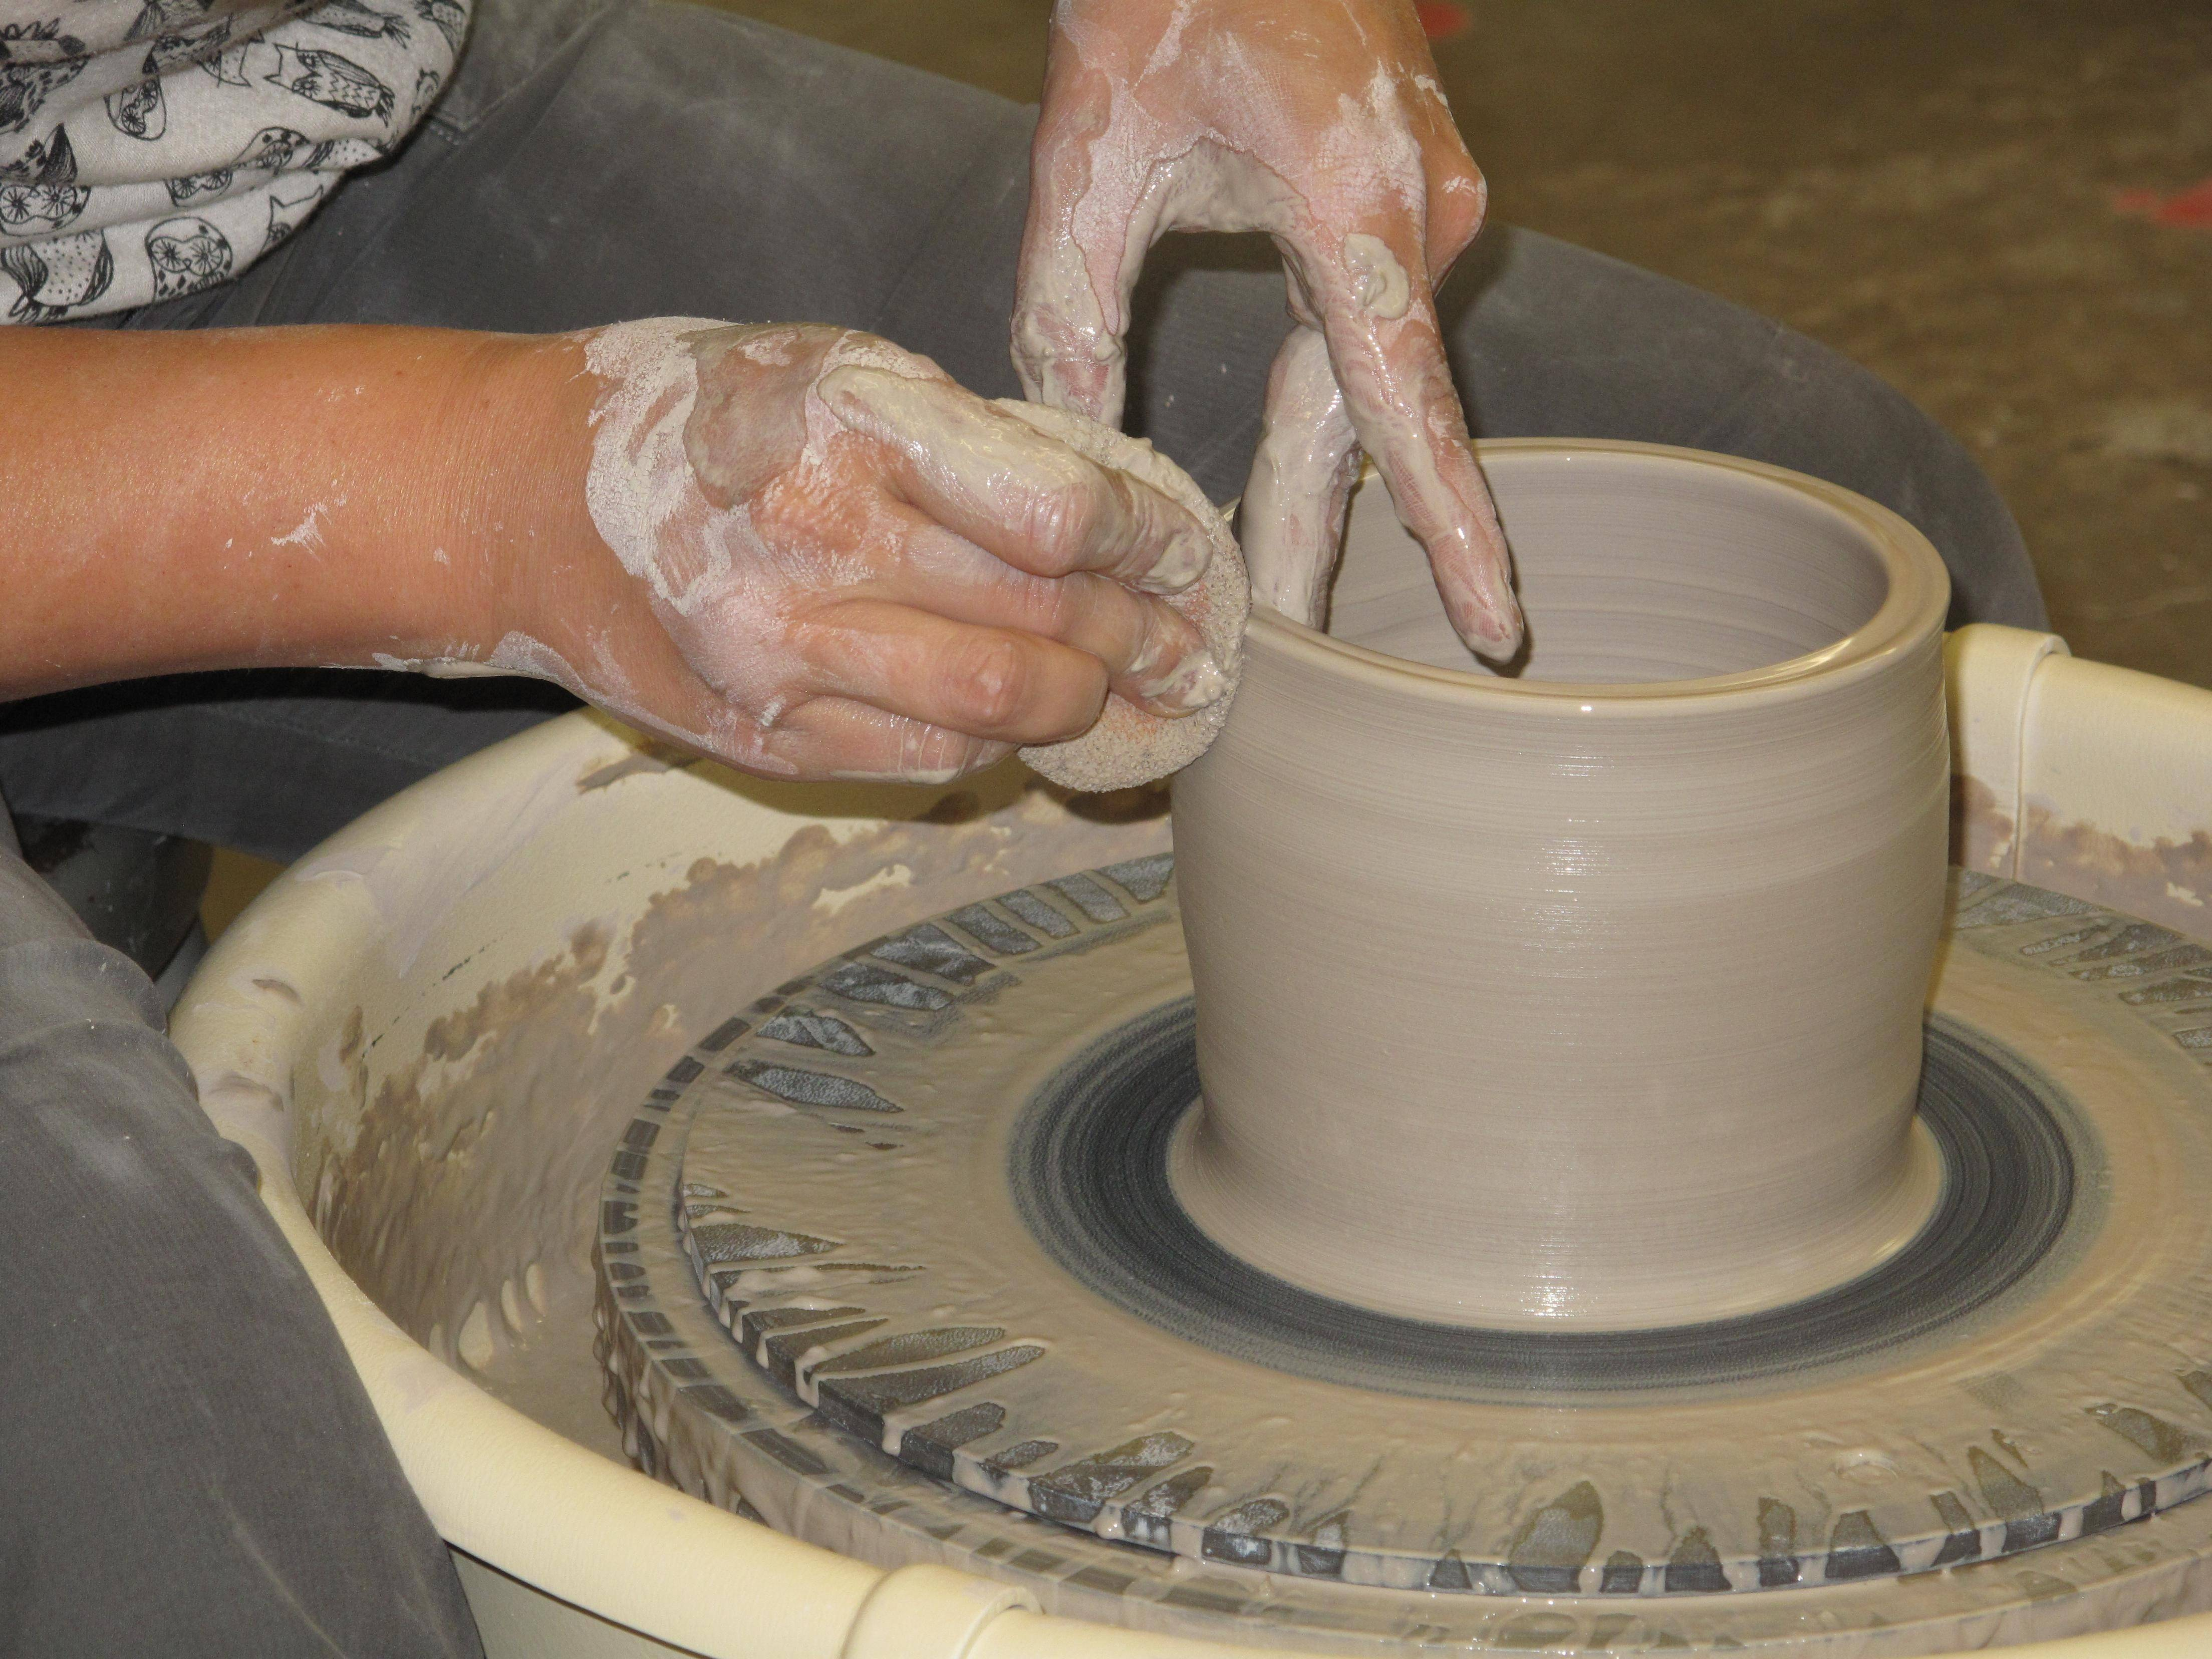 The Fine Line booth at this weekend's St. Charles Fine Art Show will feature ceramics demonstrations.